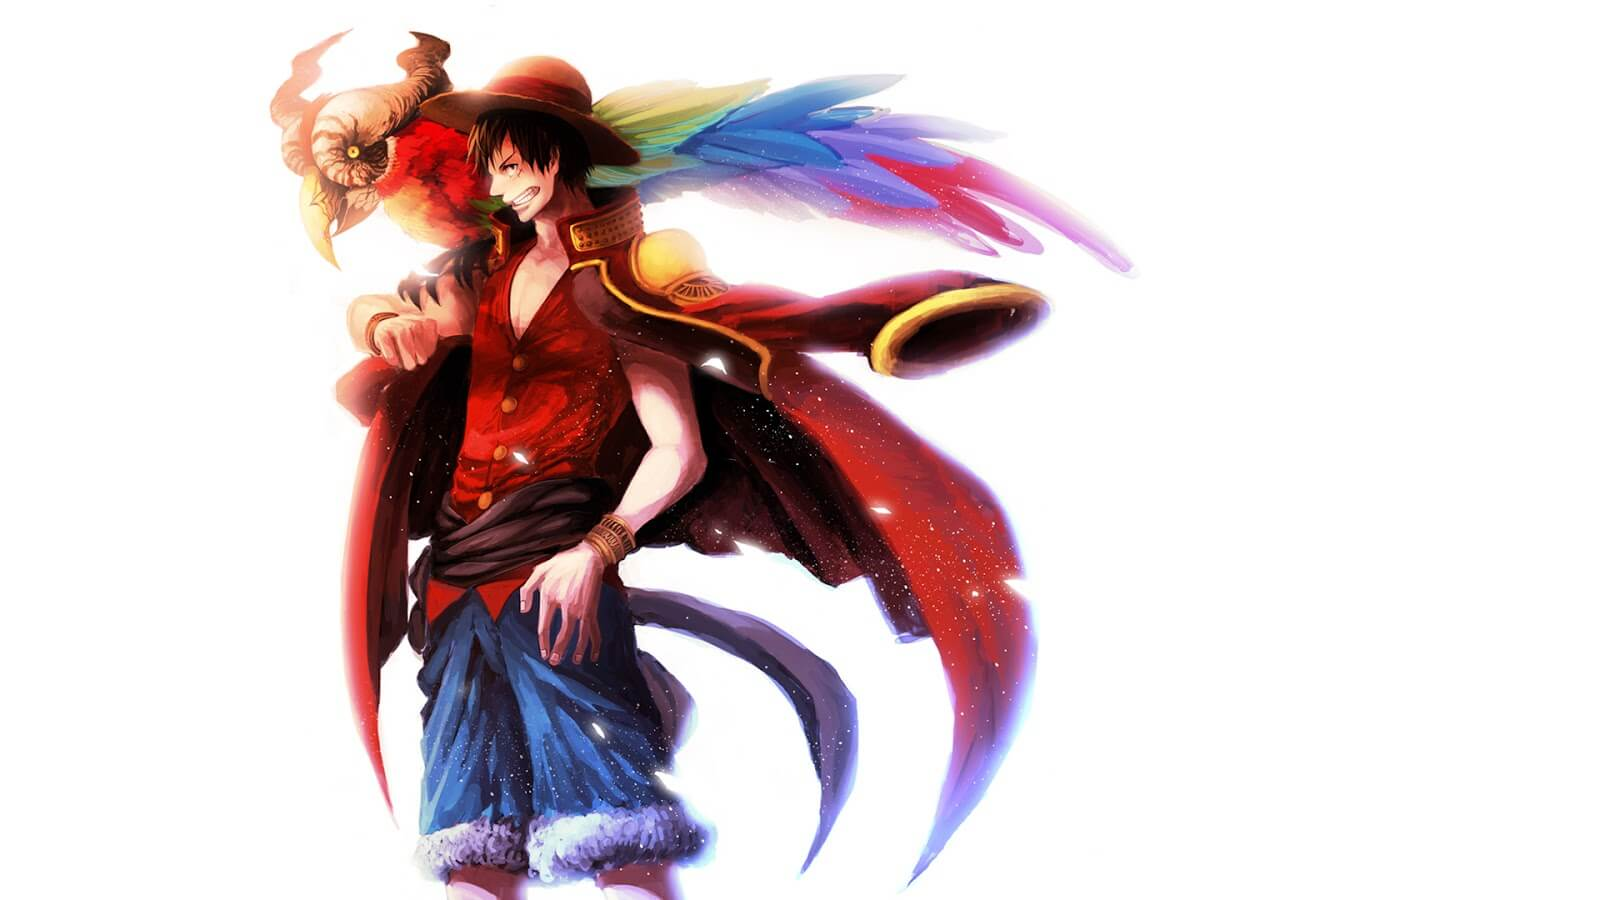 Monkey D Luffy Wallpapers Hd Download